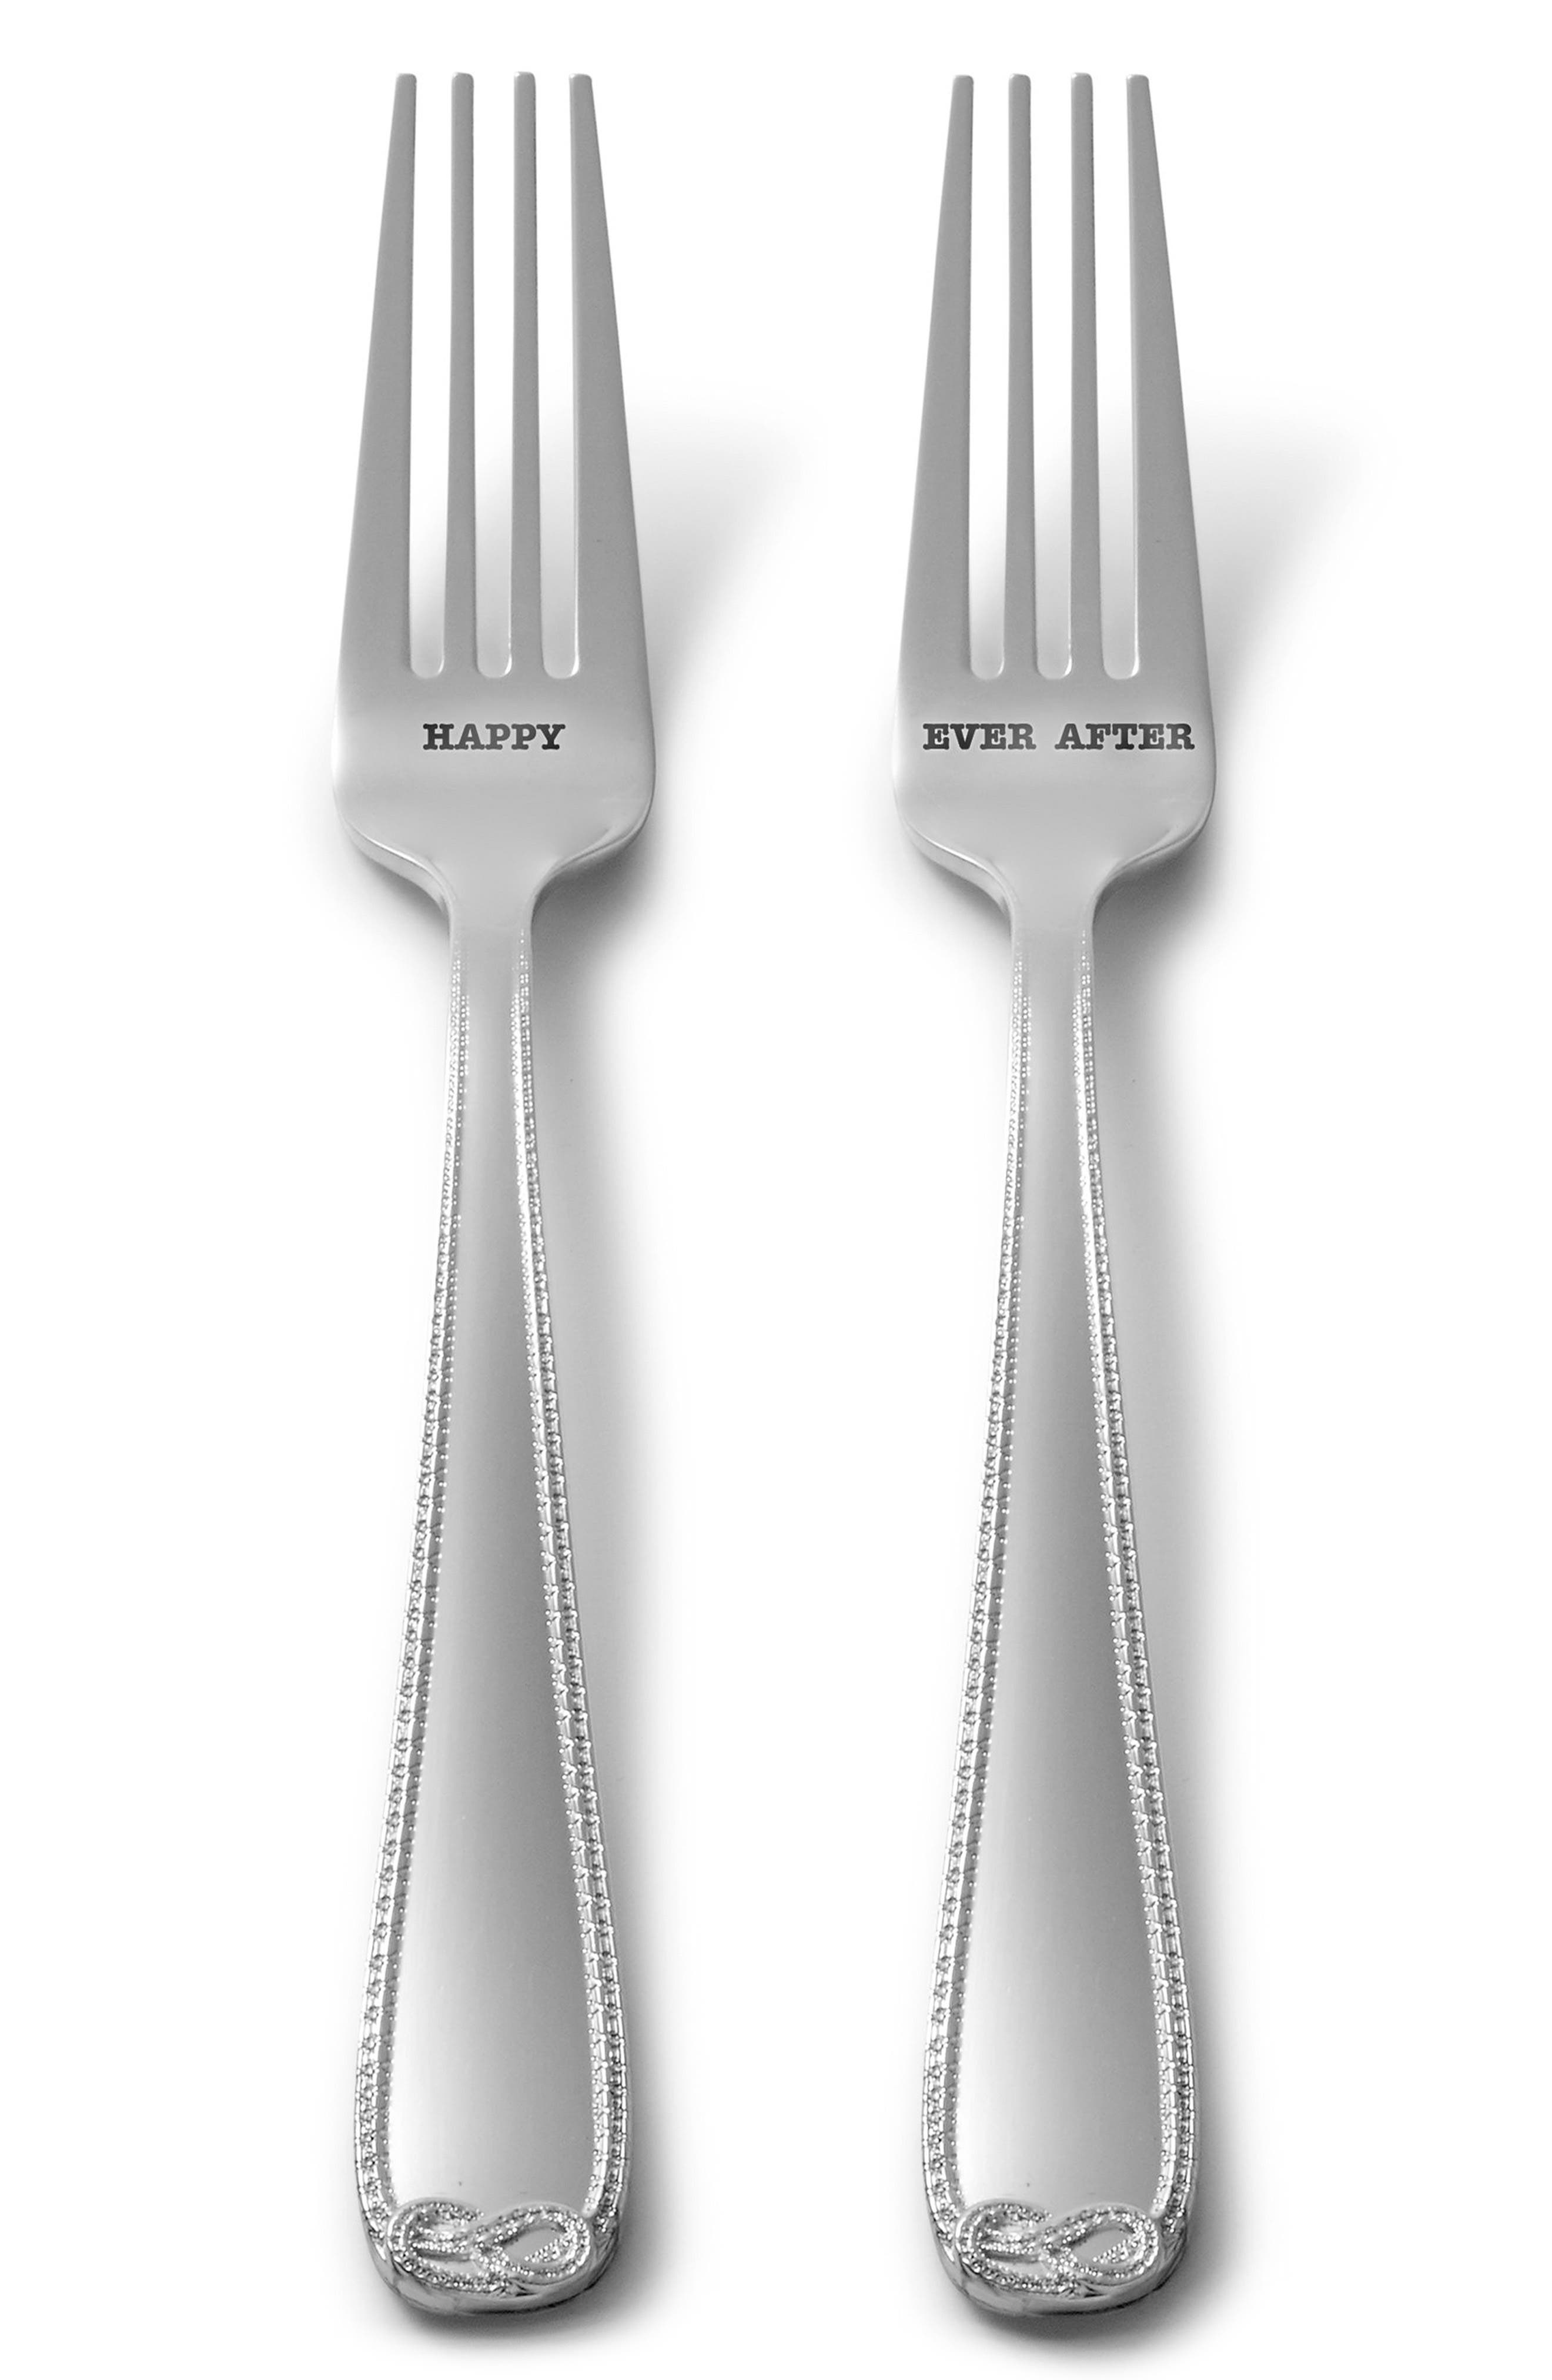 x Wedgwood Infinity Happy Ever After Set of 2 Silver Plated Forks,                         Main,                         color, Metallic Silver